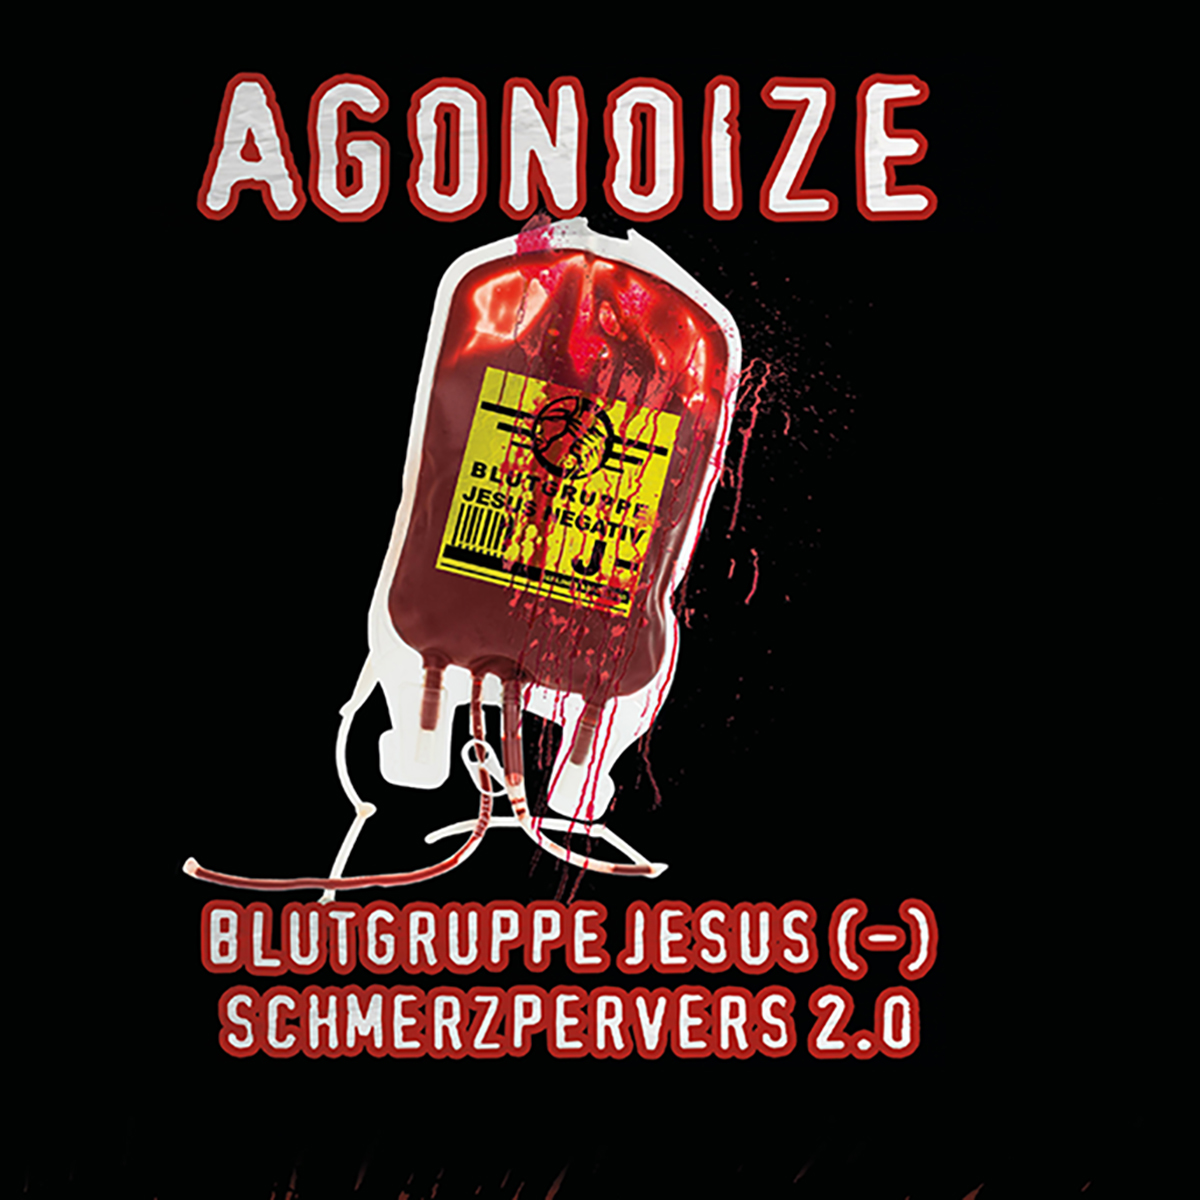 agonoize blutgruppe jesus cover